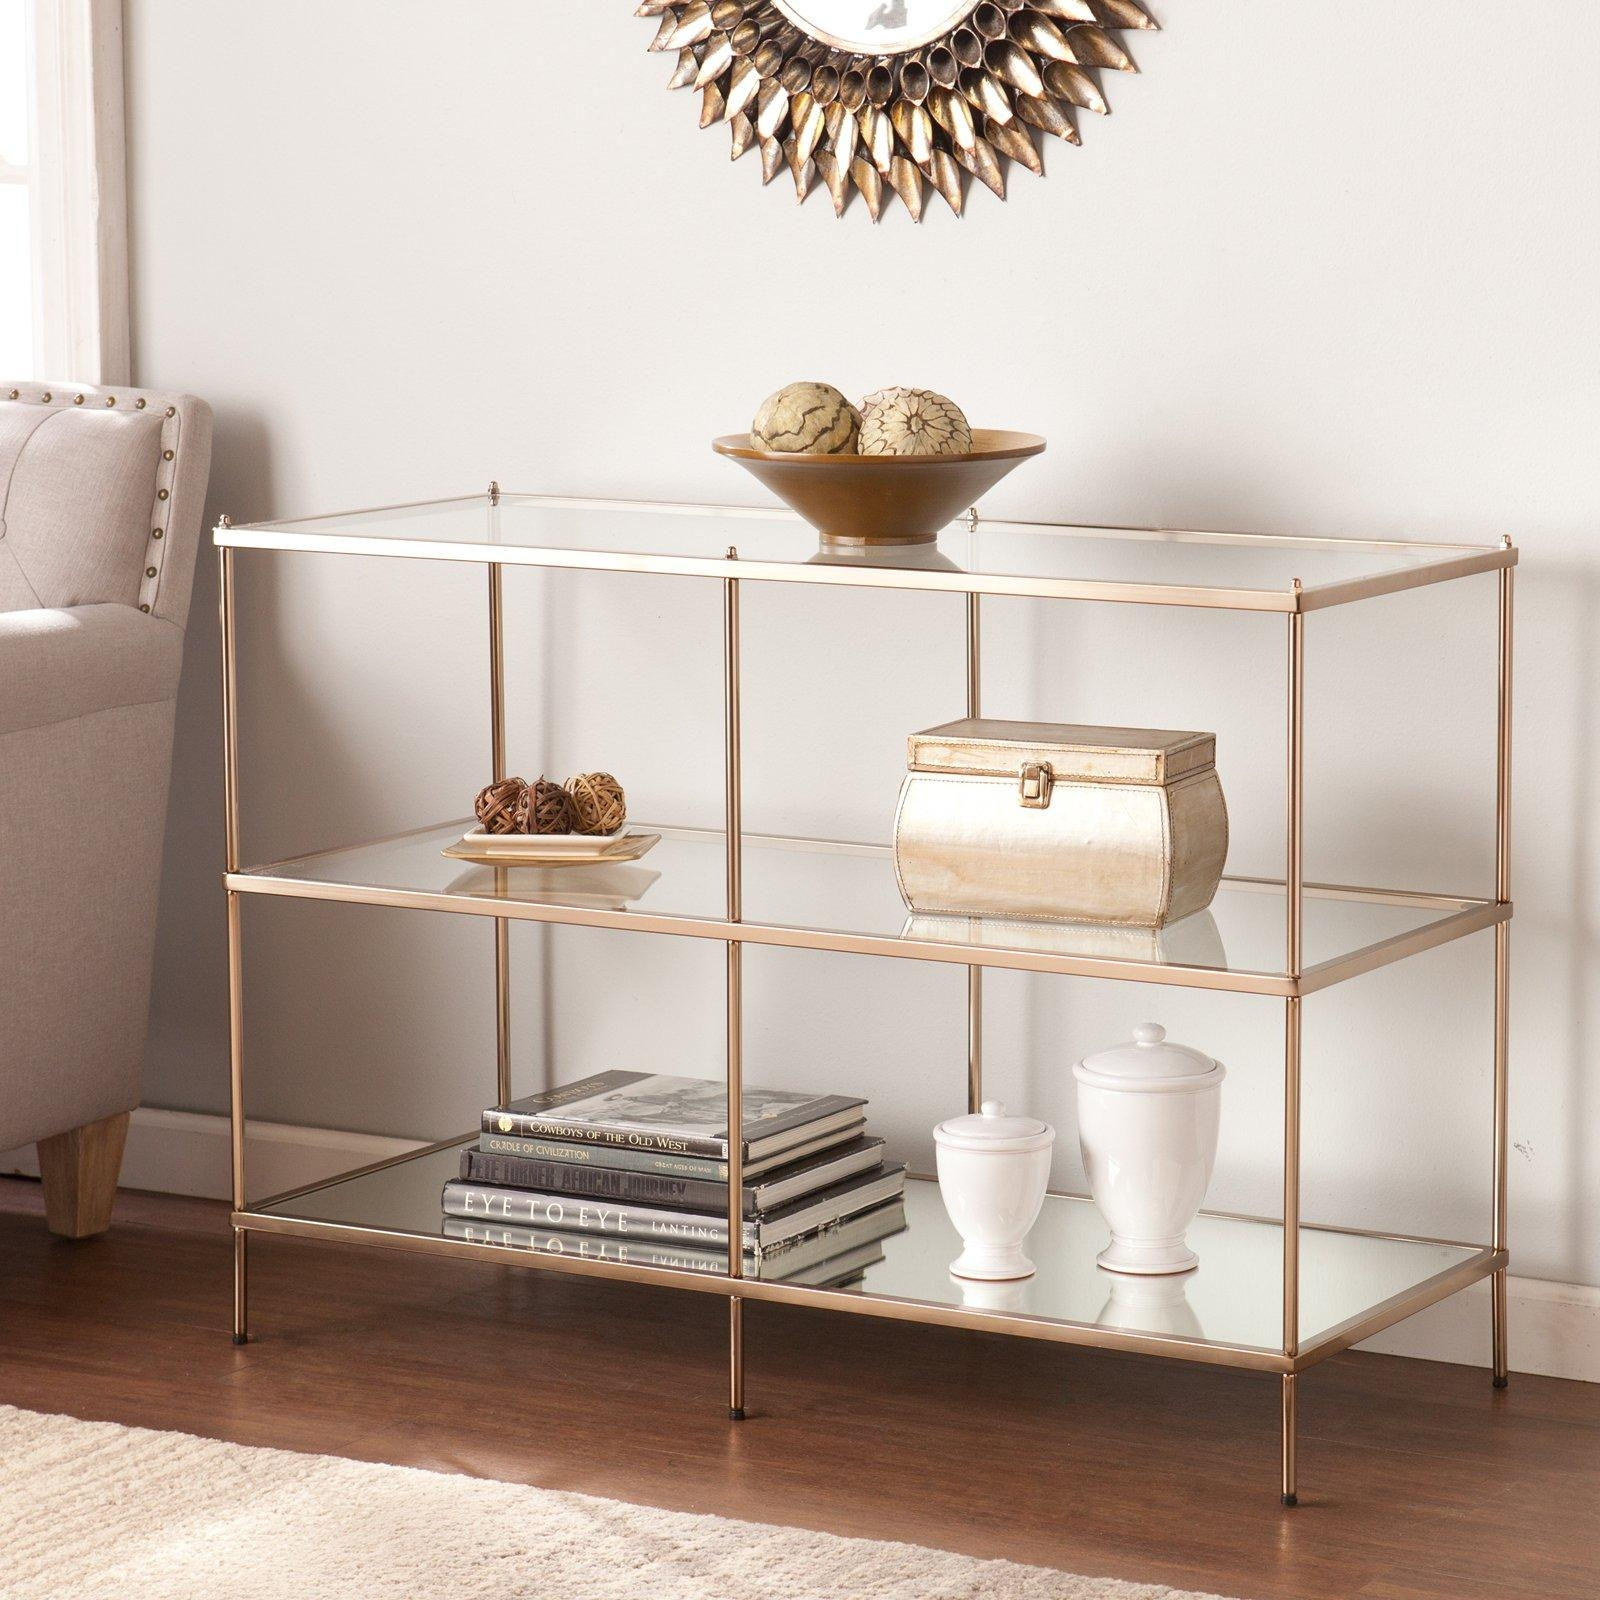 Belham Living Lamont Sofa Table – Gold | Hayneedle Pertaining To Gold Sofa Tables (View 20 of 20)